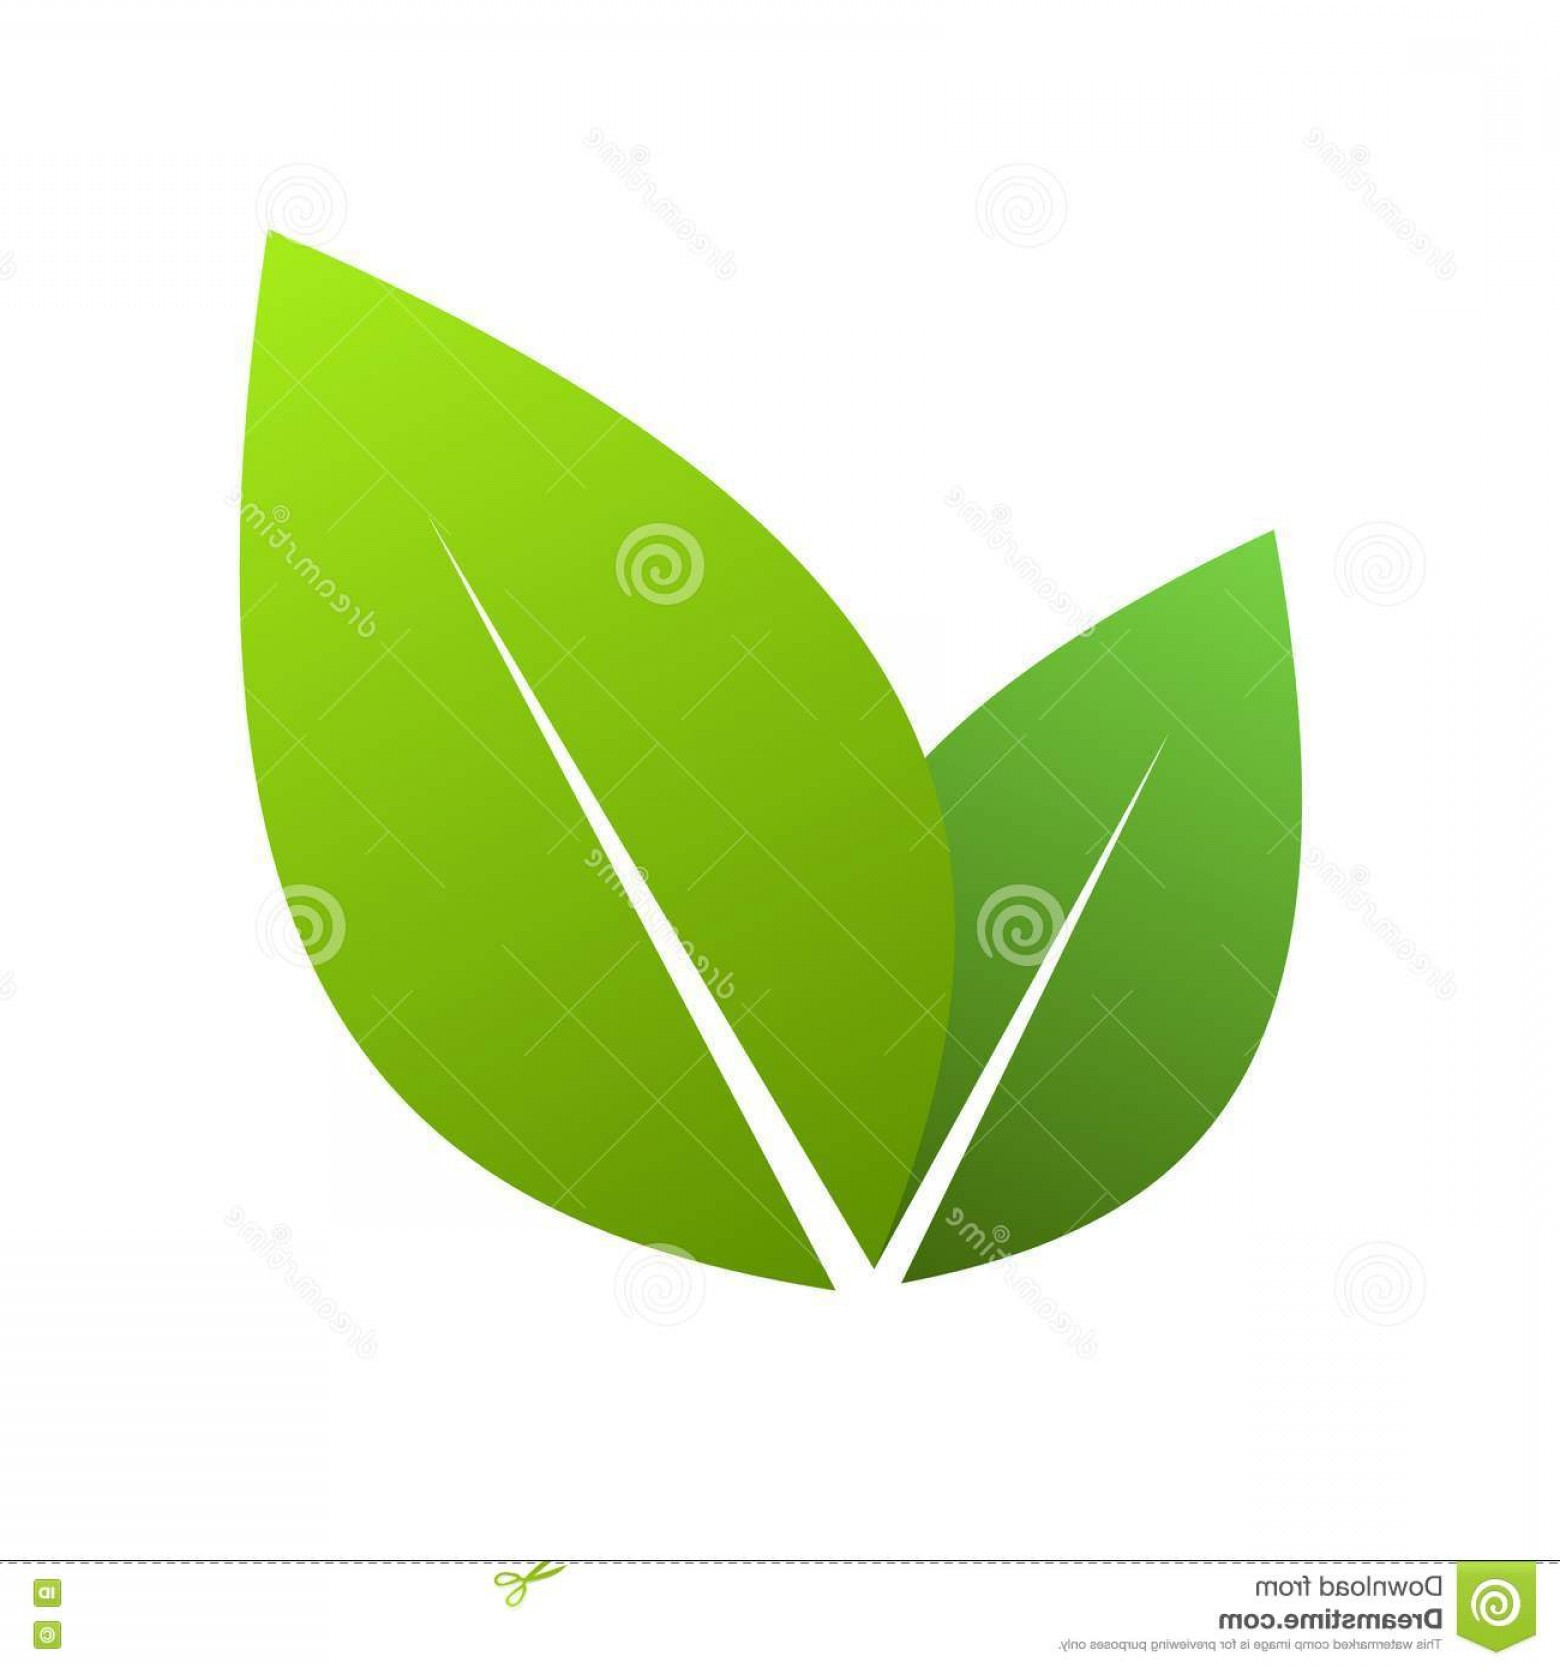 Tea Leaf Vector Art: Royalty Free Stock Images Green Leaves Vector Illustration Ecology Concept Icon Glossy Image